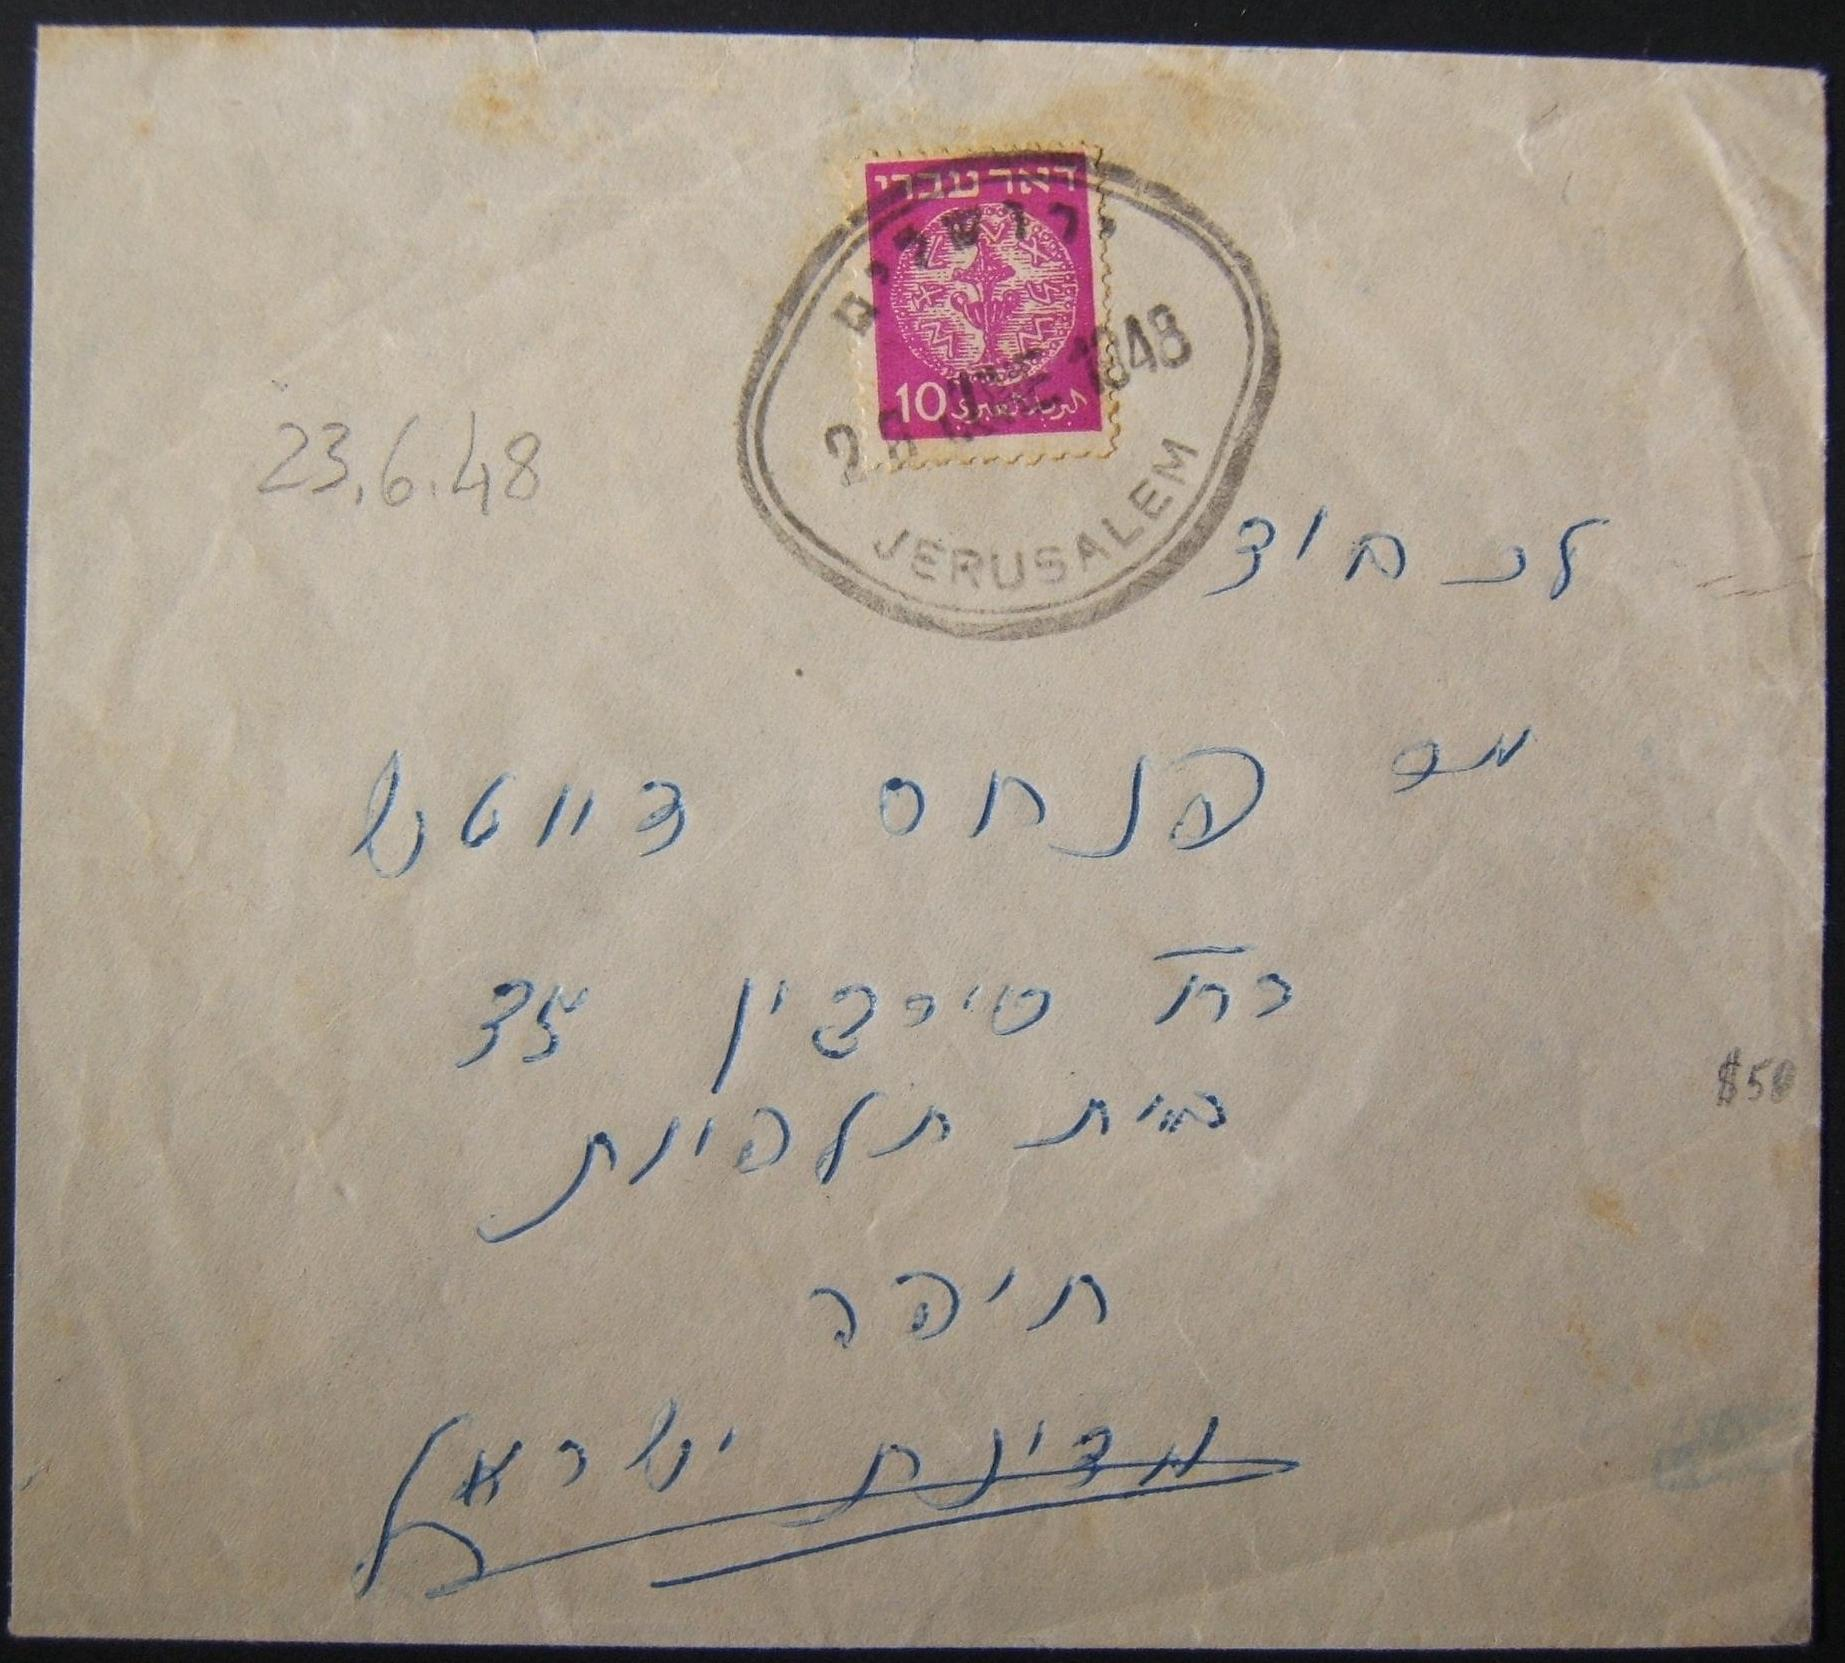 Early Doar Ivri 23 JUNE 1948 cv ex JERUSALEM to HAIFA franked 10m at DO-1 period letter rate using DI Ba3 (newly issued in J'lem as of 20 June) and tied by 'egg' BaB-2 pmk (date ap